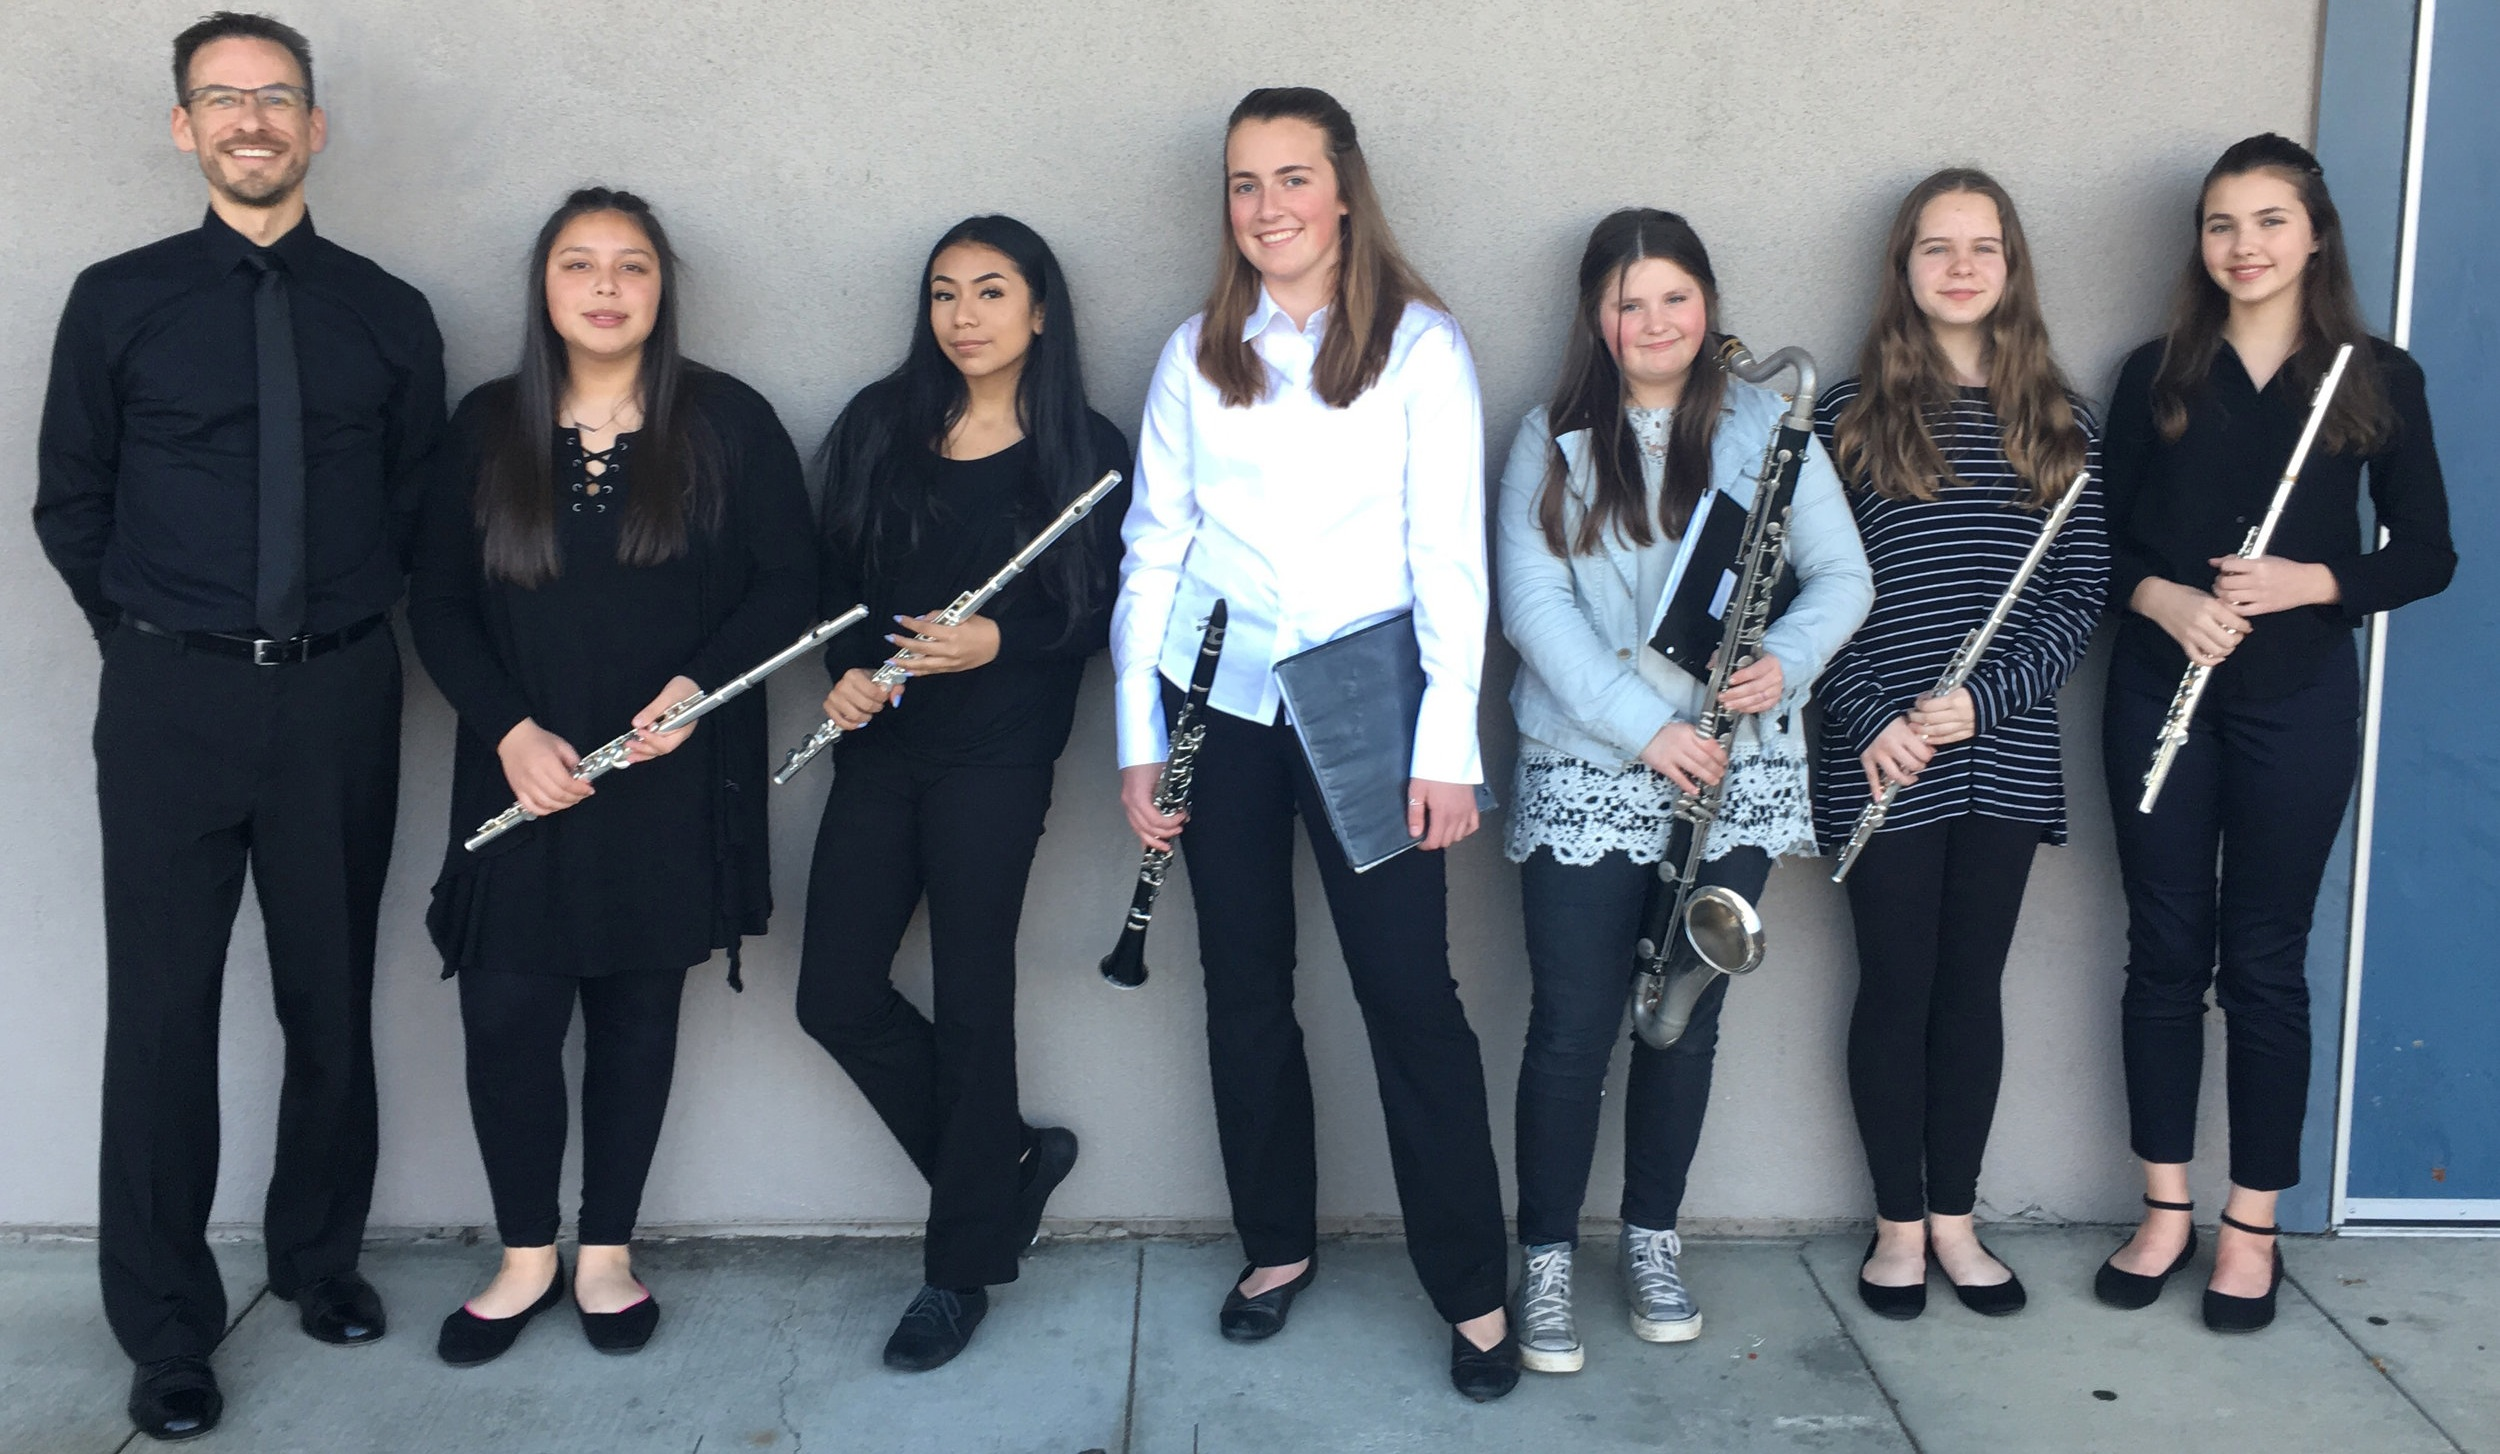 Honor Band 3-23-19 - BGMS Participants.jpg